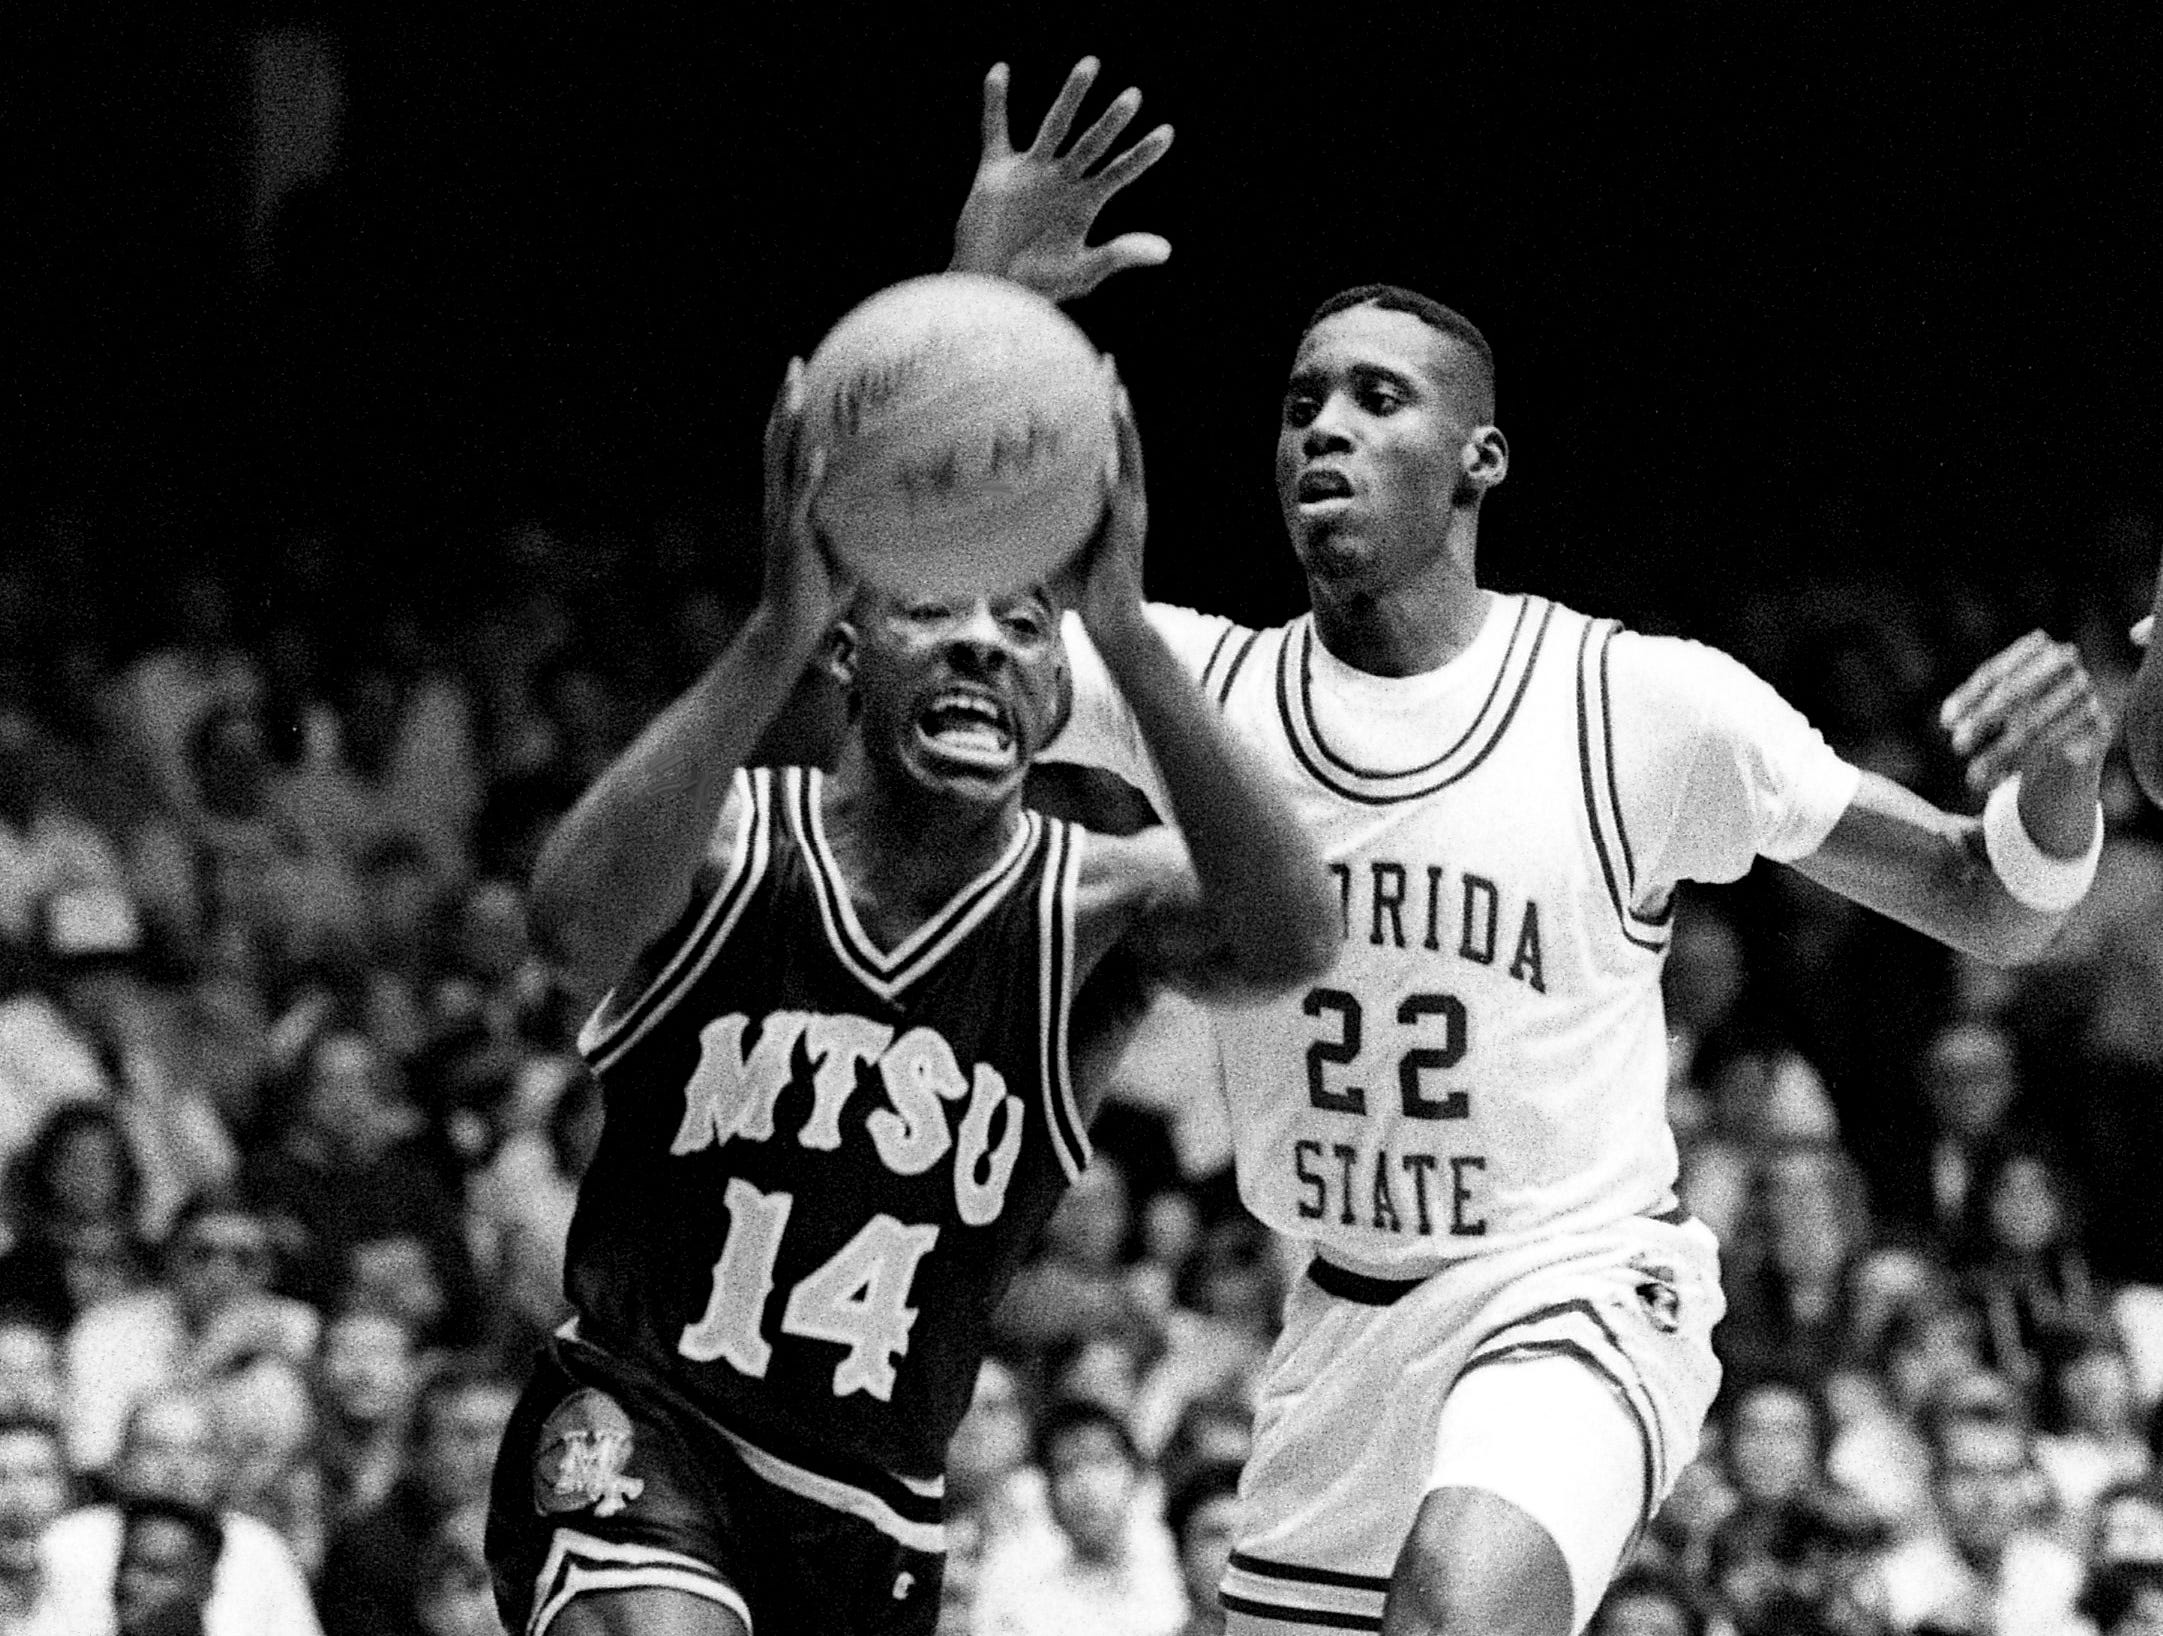 Middle Tennessee State guard Gerald Harris (14) is ready to make a move while Tharon Mayes (22) of Florida State tries to stop him. The Blue Raiders stunned 14th ranked Florida State 97-83 in the first round of the NCAA Southeast Regional at Vanderbilt's Memorial Gym on March 16, 1989.